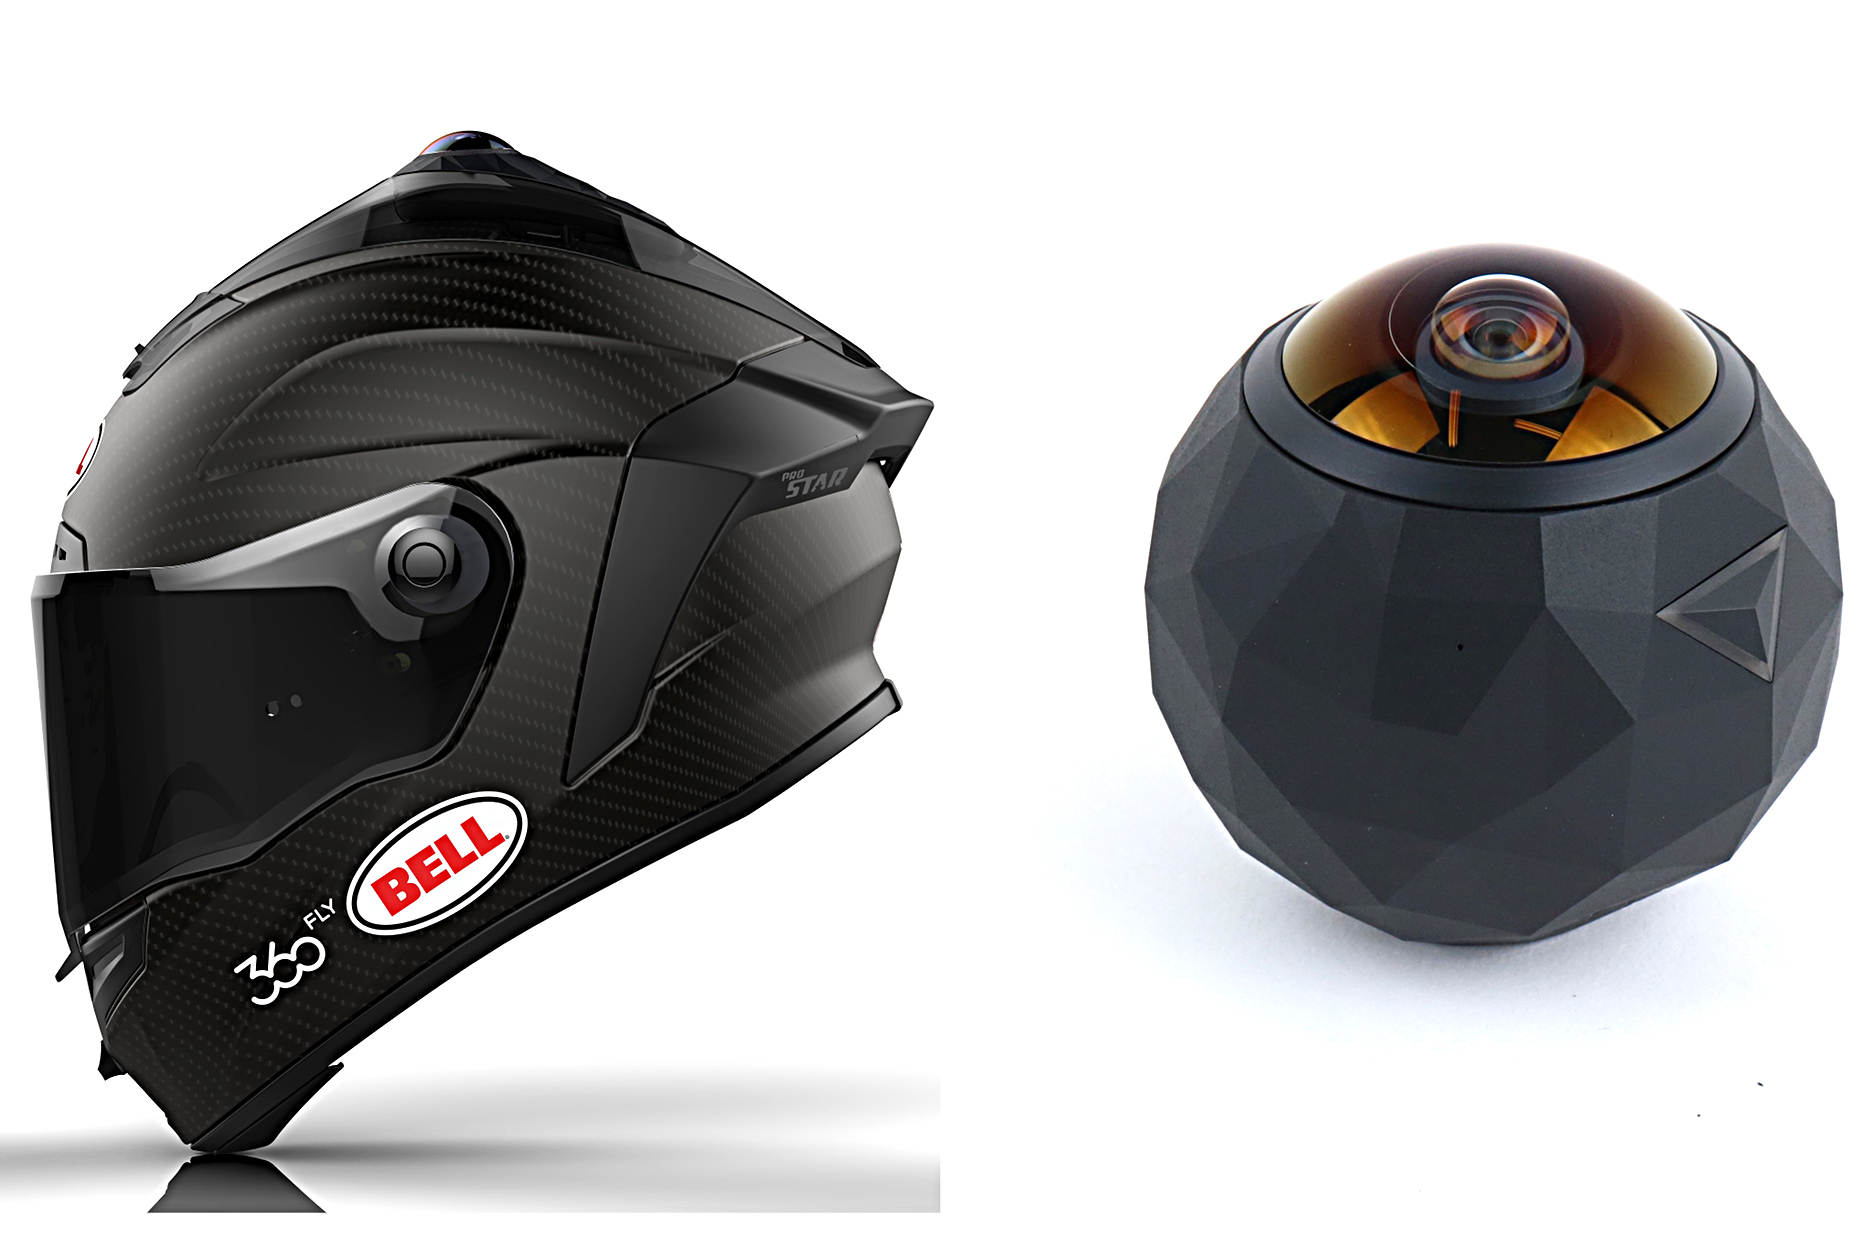 New Bell Helmets Incorporate 360 Degree Video Camera